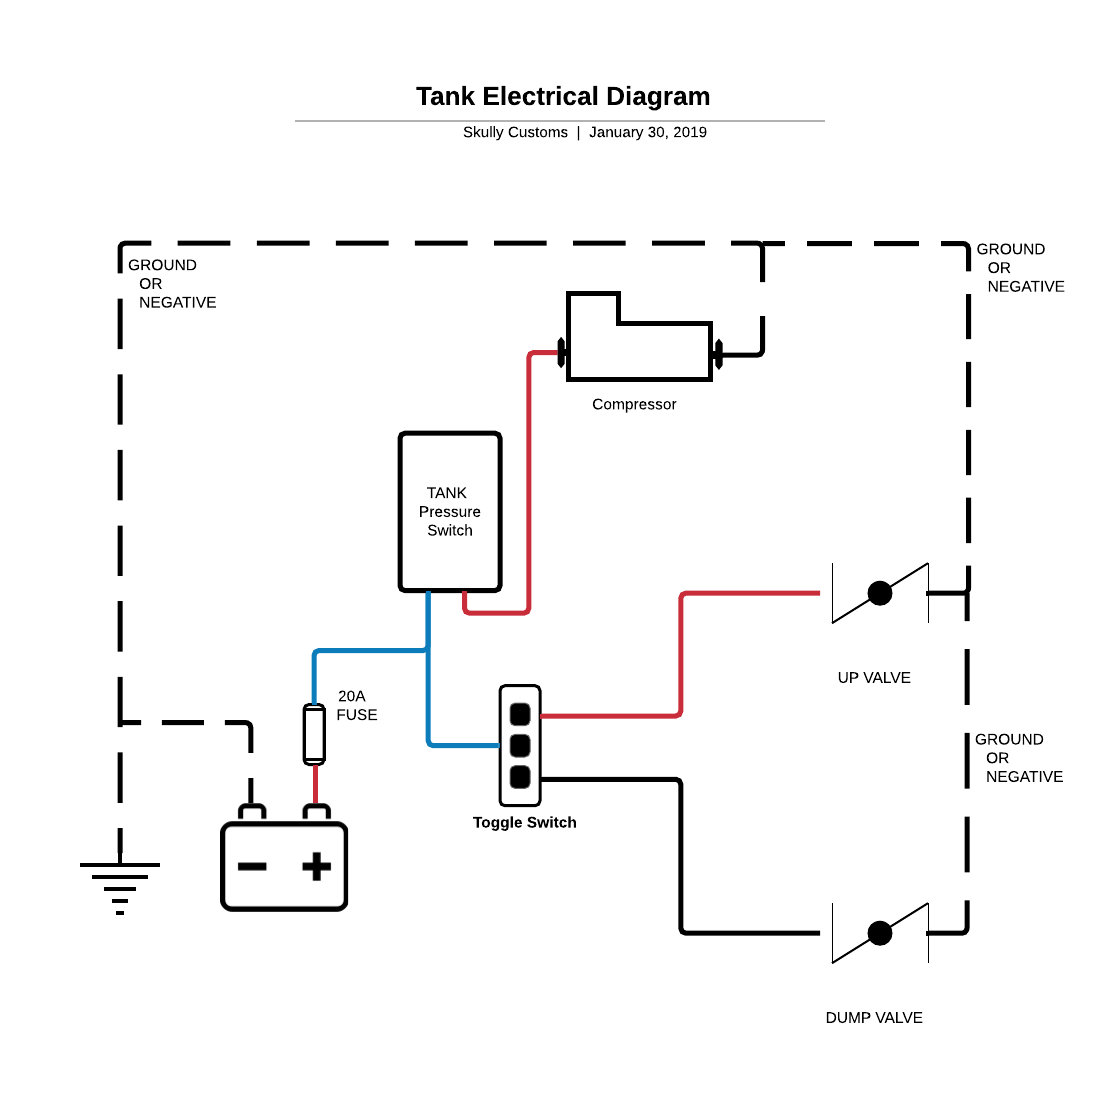 medium resolution of fast up tank with toggle switch